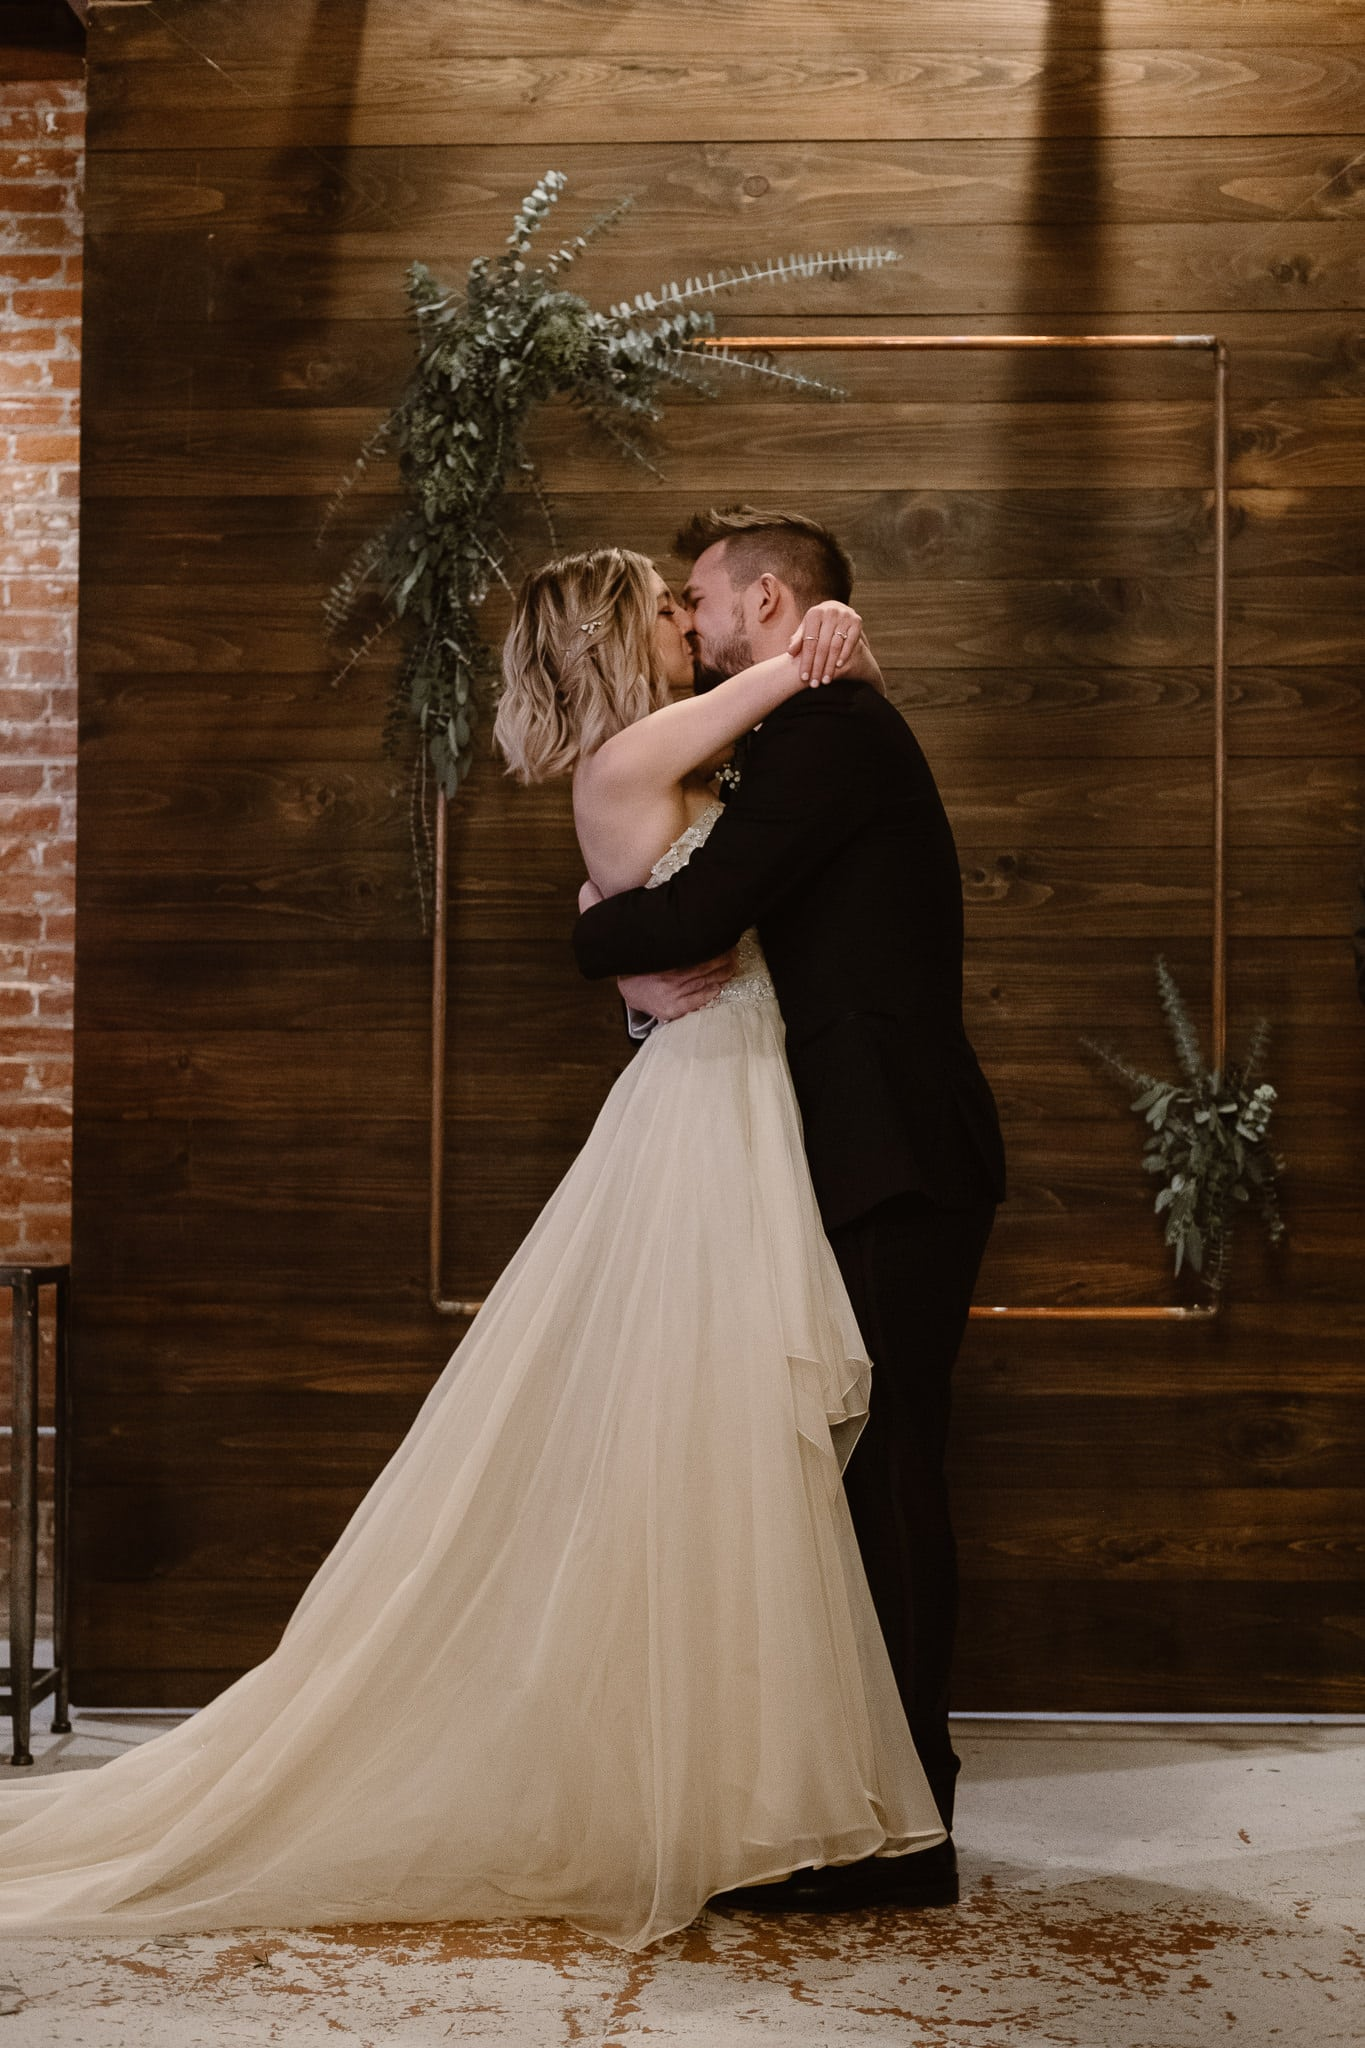 St Vrain Wedding Photographer | Longmont Wedding Photographer | Colorado Winter Wedding Photographer, Colorado industrial chic wedding ceremony, first kiss